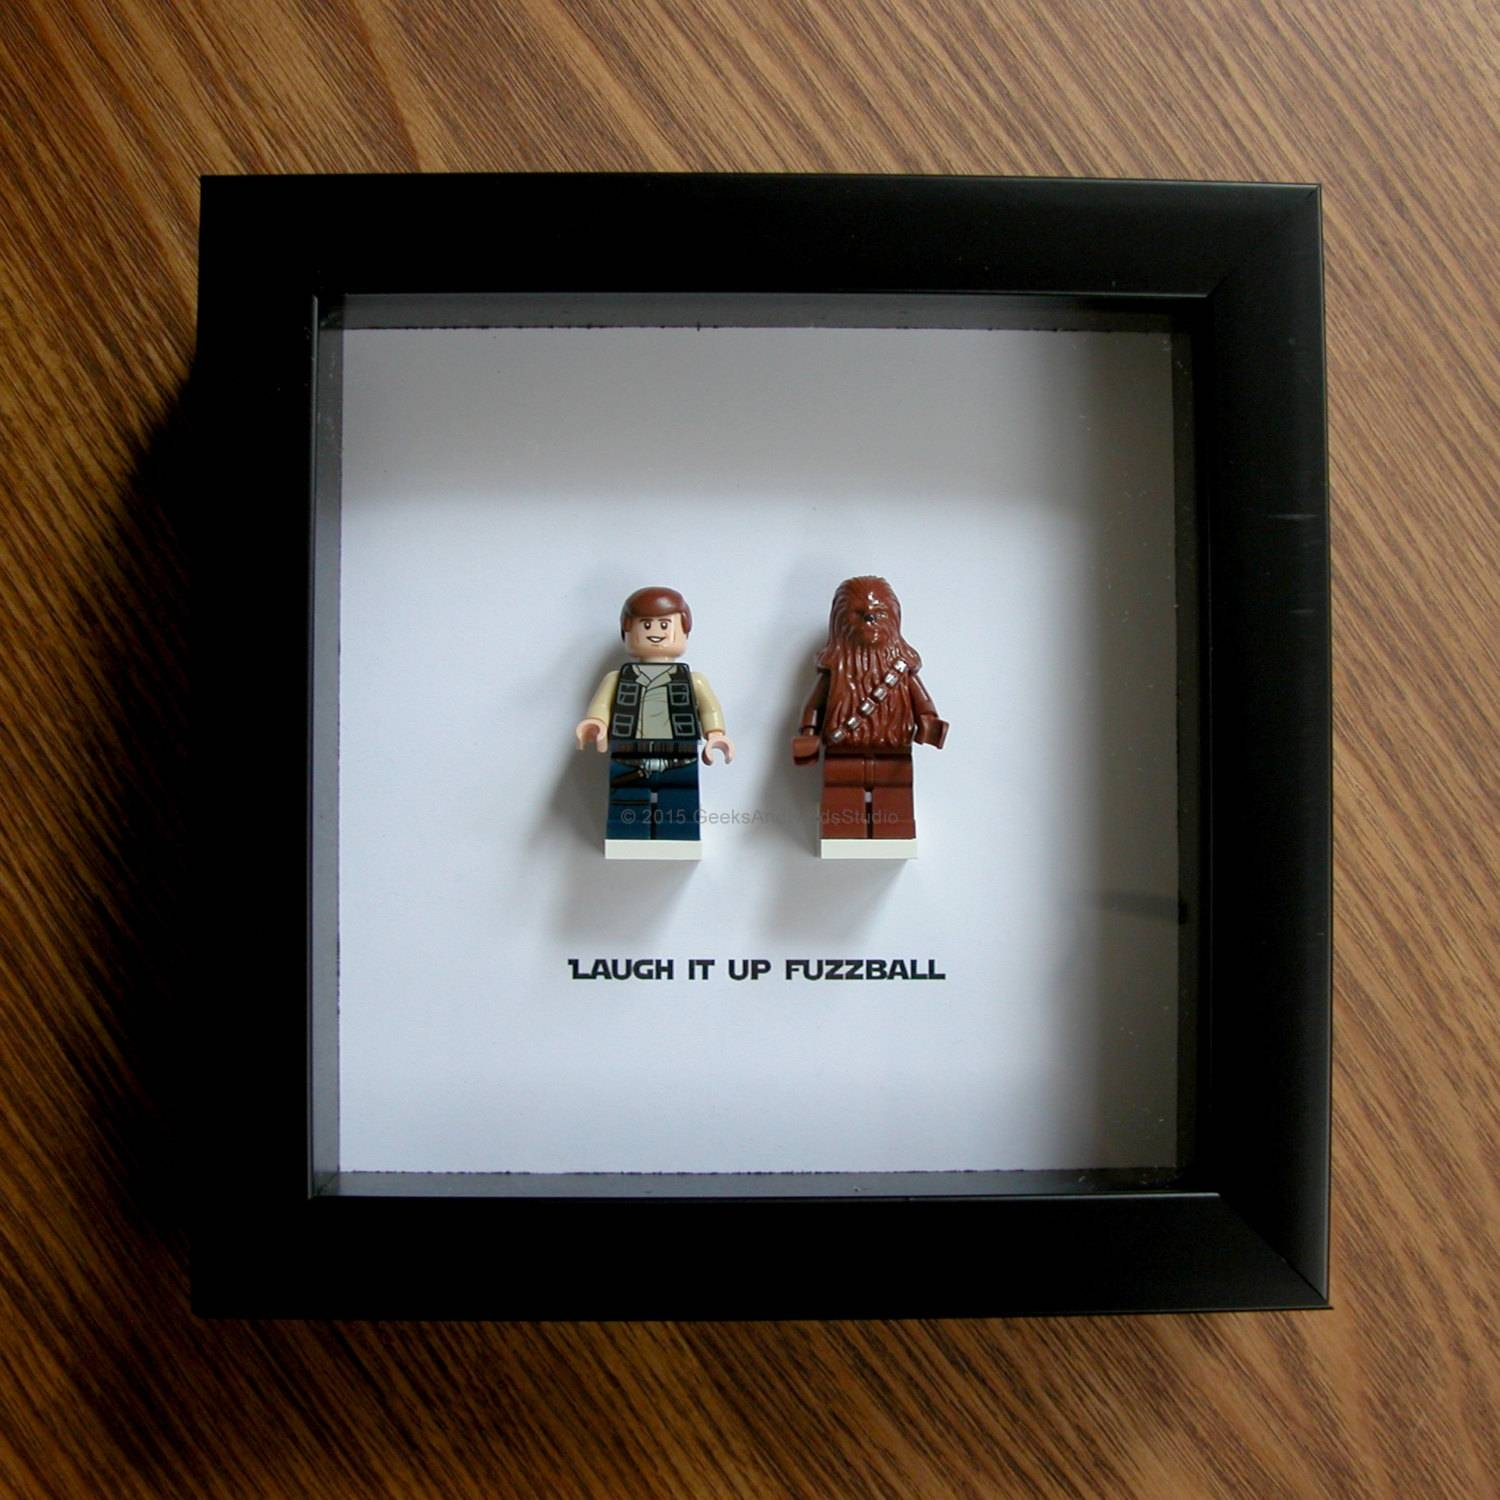 Lego Star Wars Art Frame Han Solo & Chewbacca Lego Within Newest Lego Star Wars Wall Art (View 3 of 20)